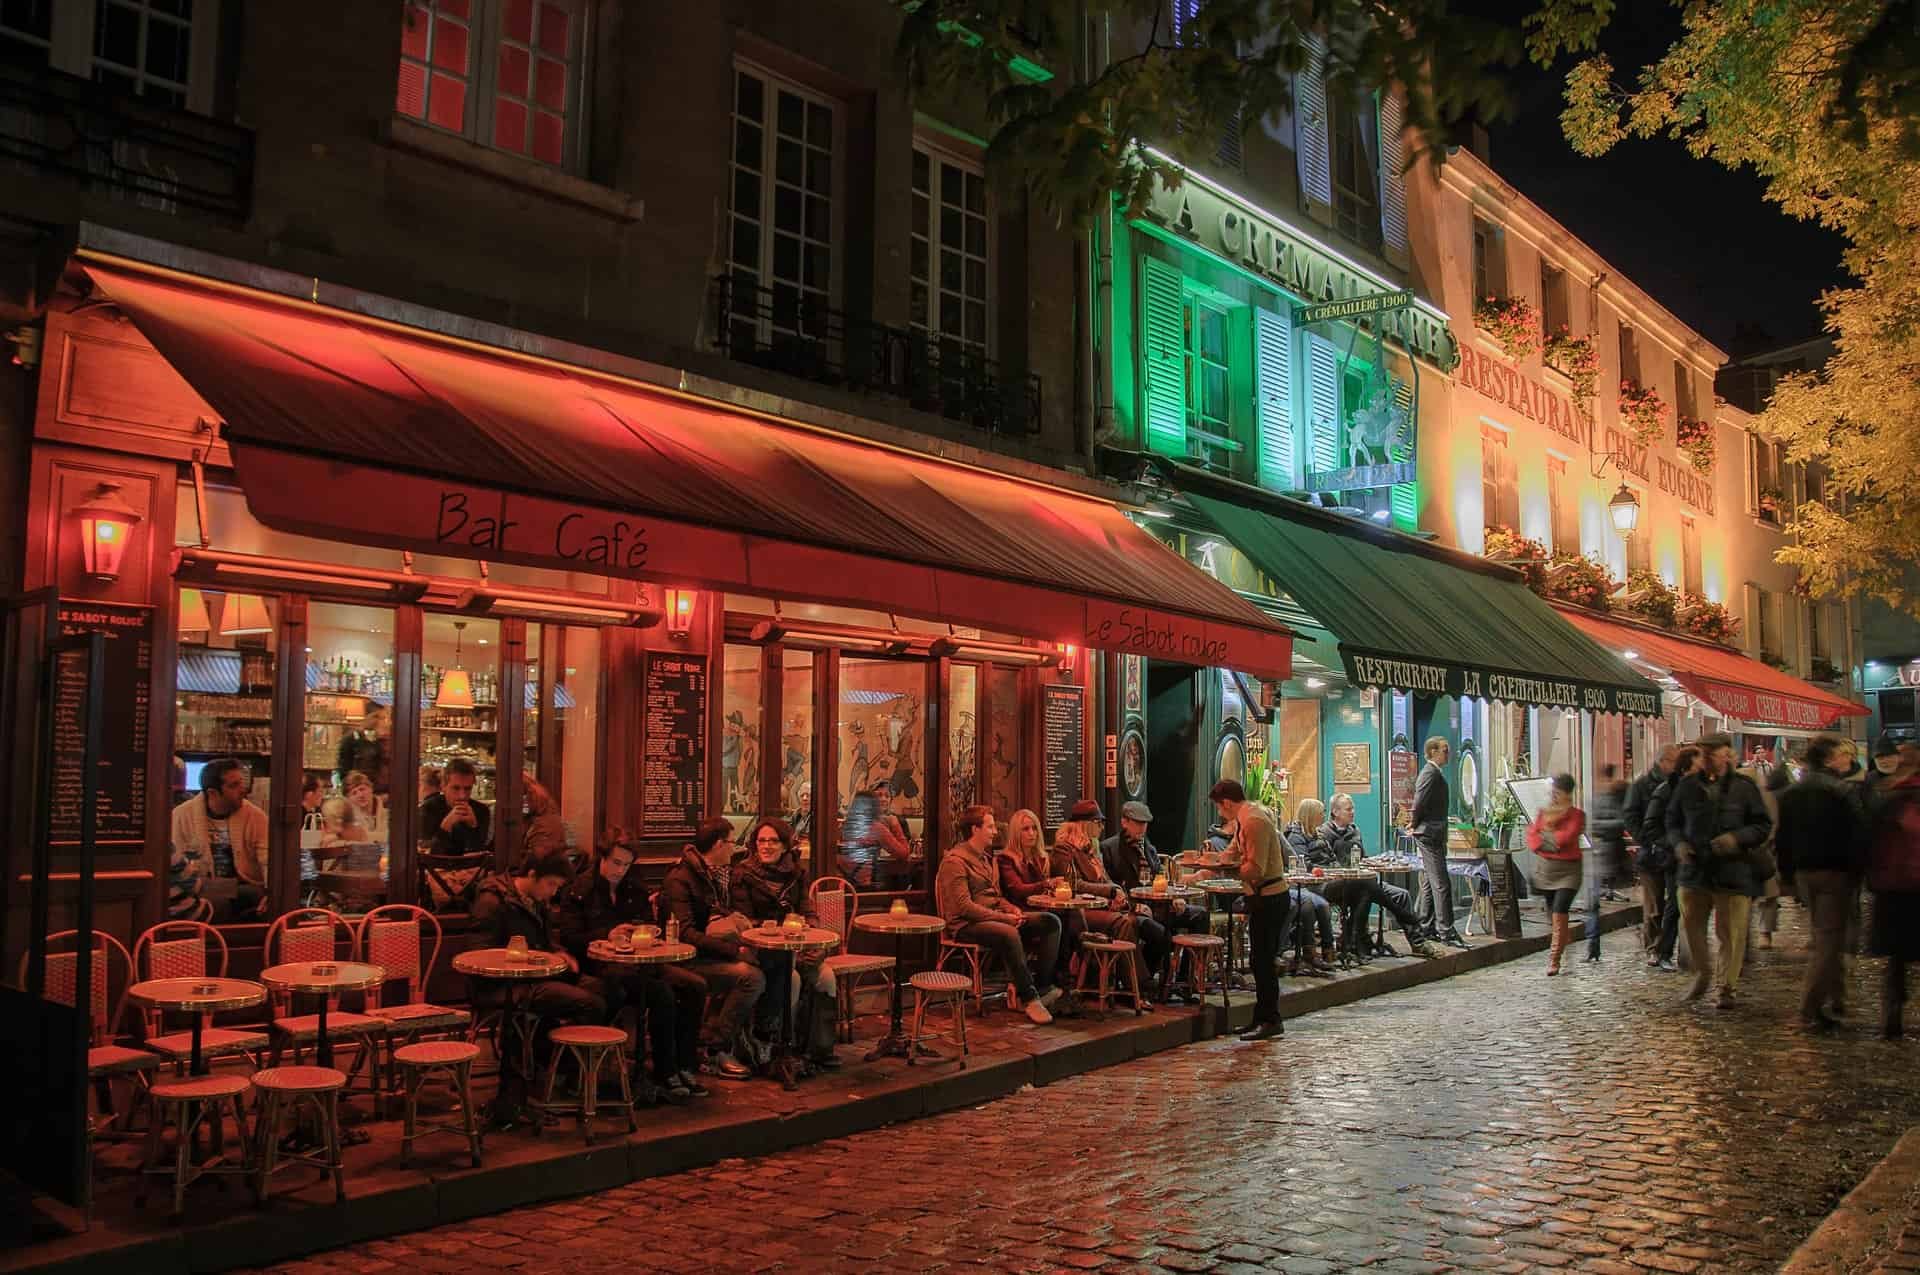 Paris itinerary 4 days: The Rue Mouffetard should be on your four days in Paris agenda - this cobbled stone street is a top item on what to see in Paris in 3 days.